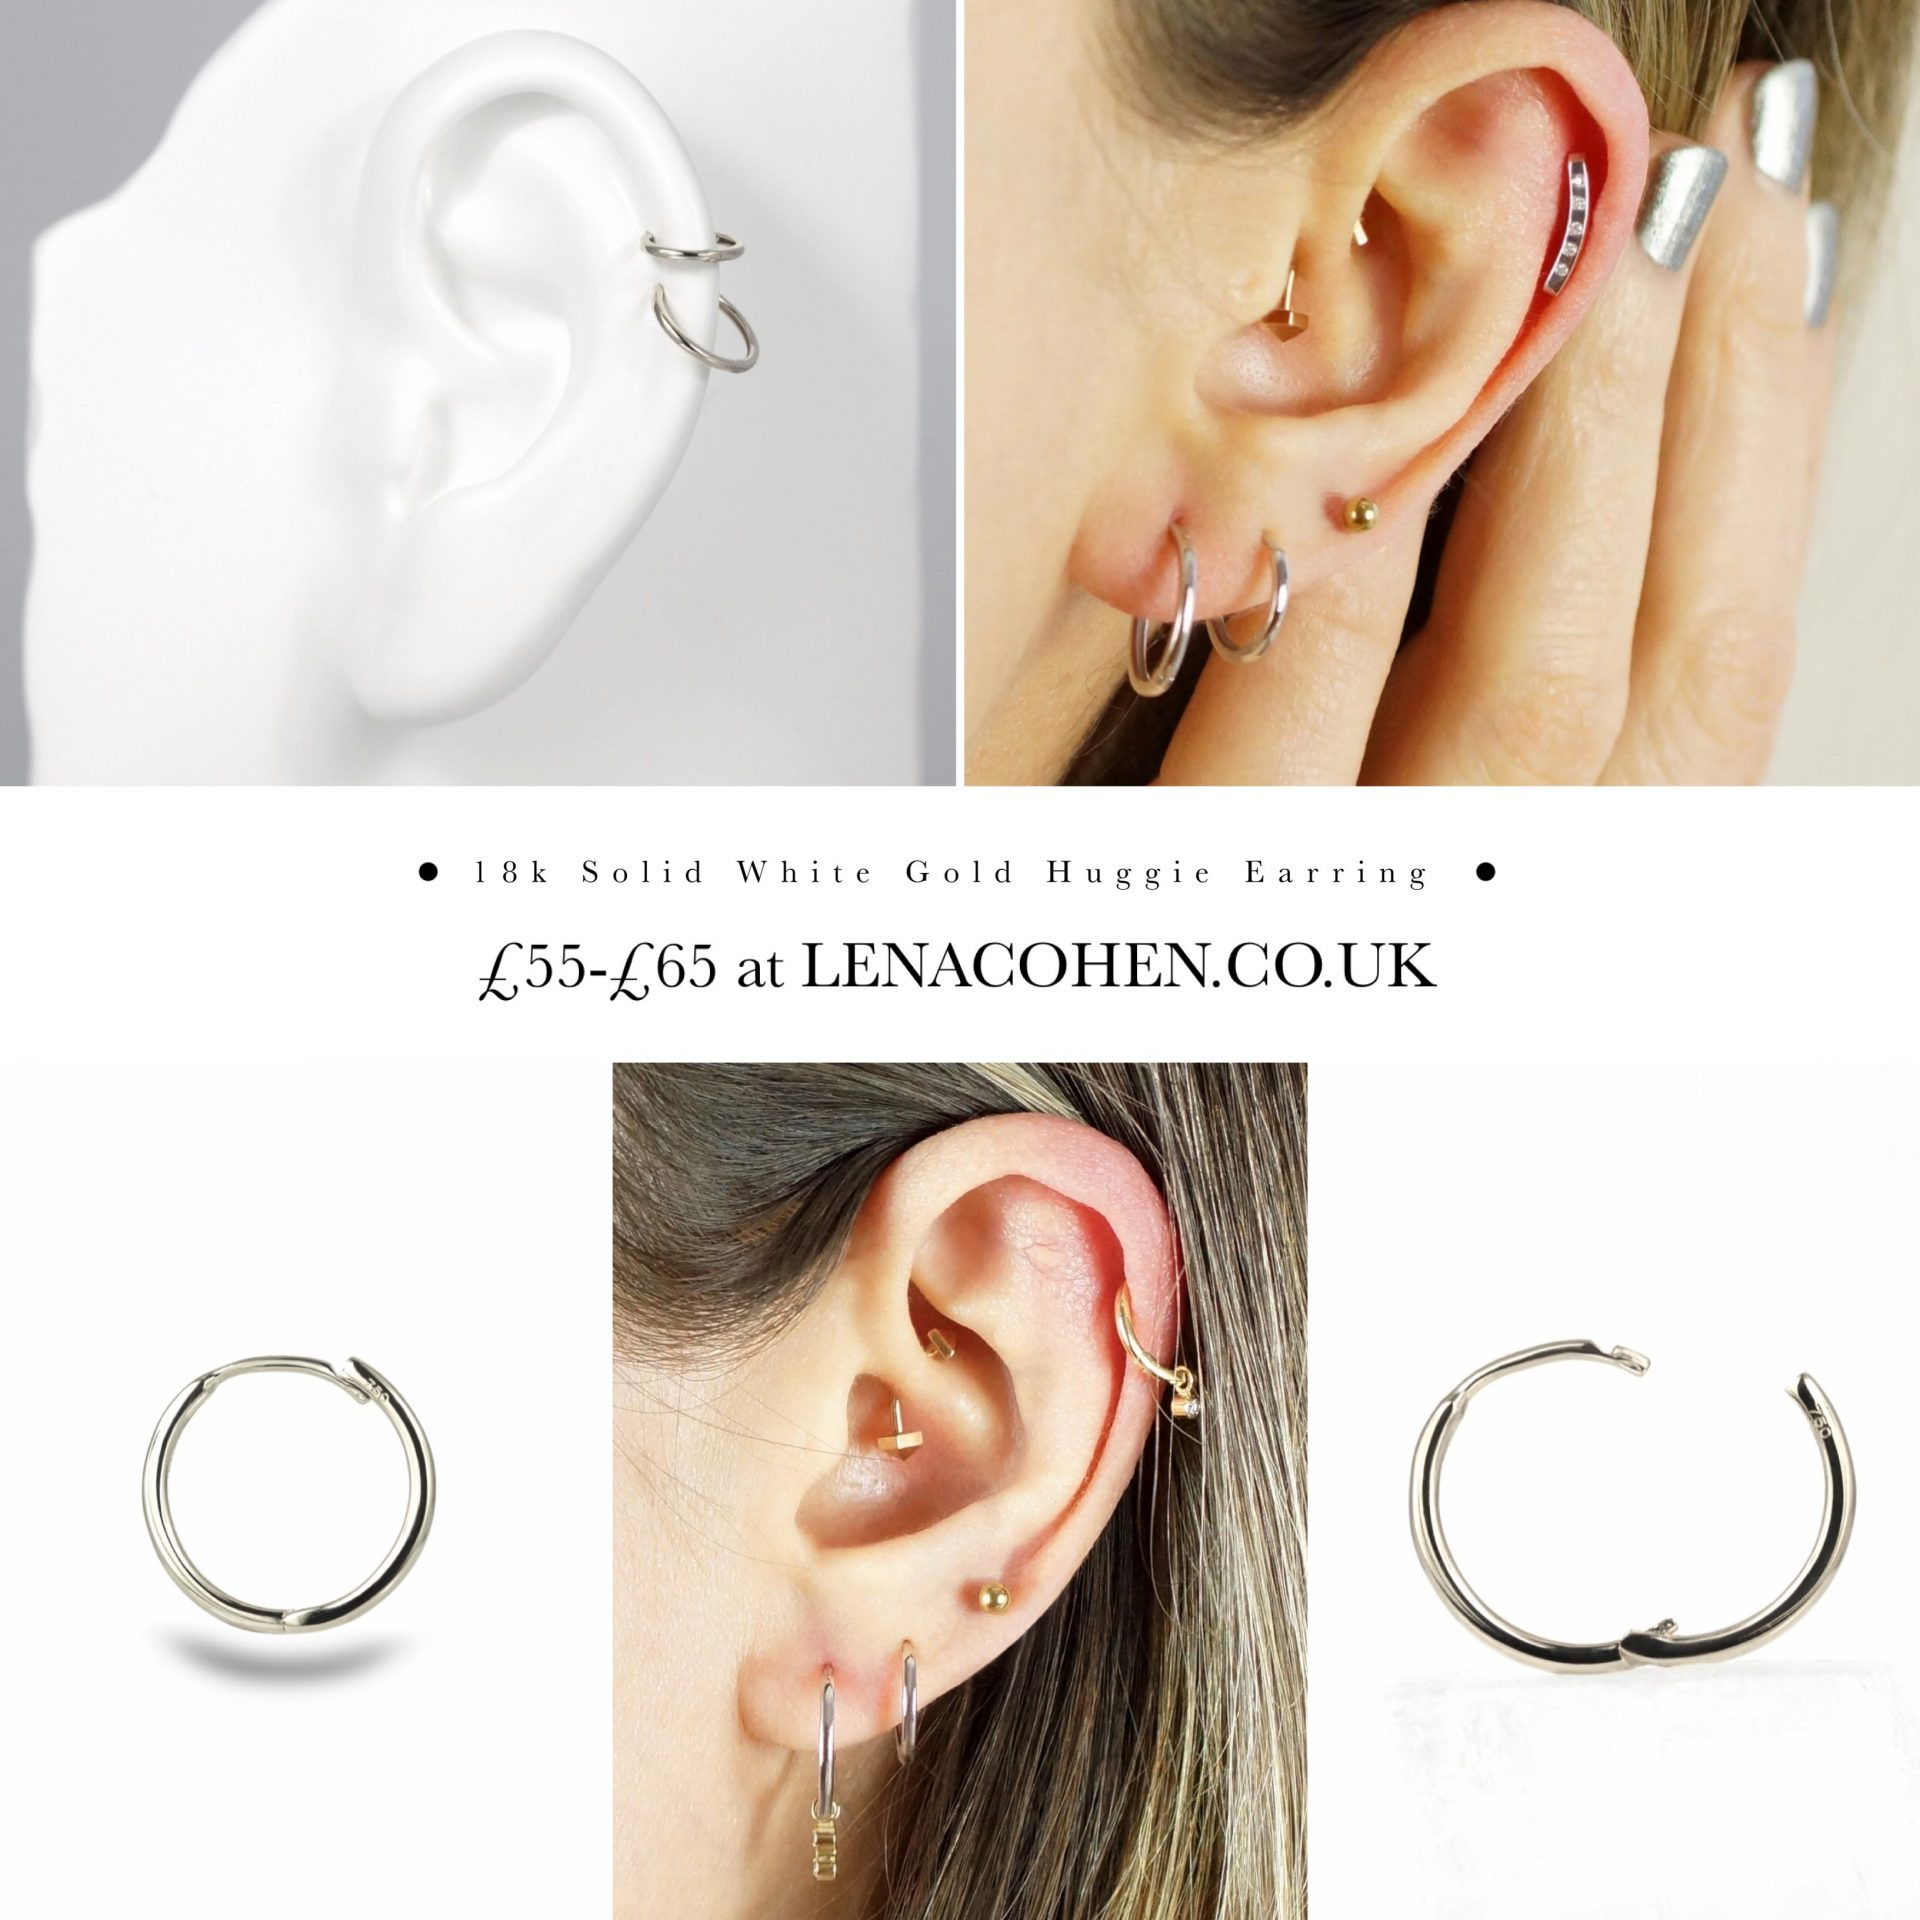 The Huggie Clicker What are these? style of little hoop earrings that 'hug' your earlobe or cartilage hence the name Huggie. The clicker is the mechanism that locks the Huggie securely in place